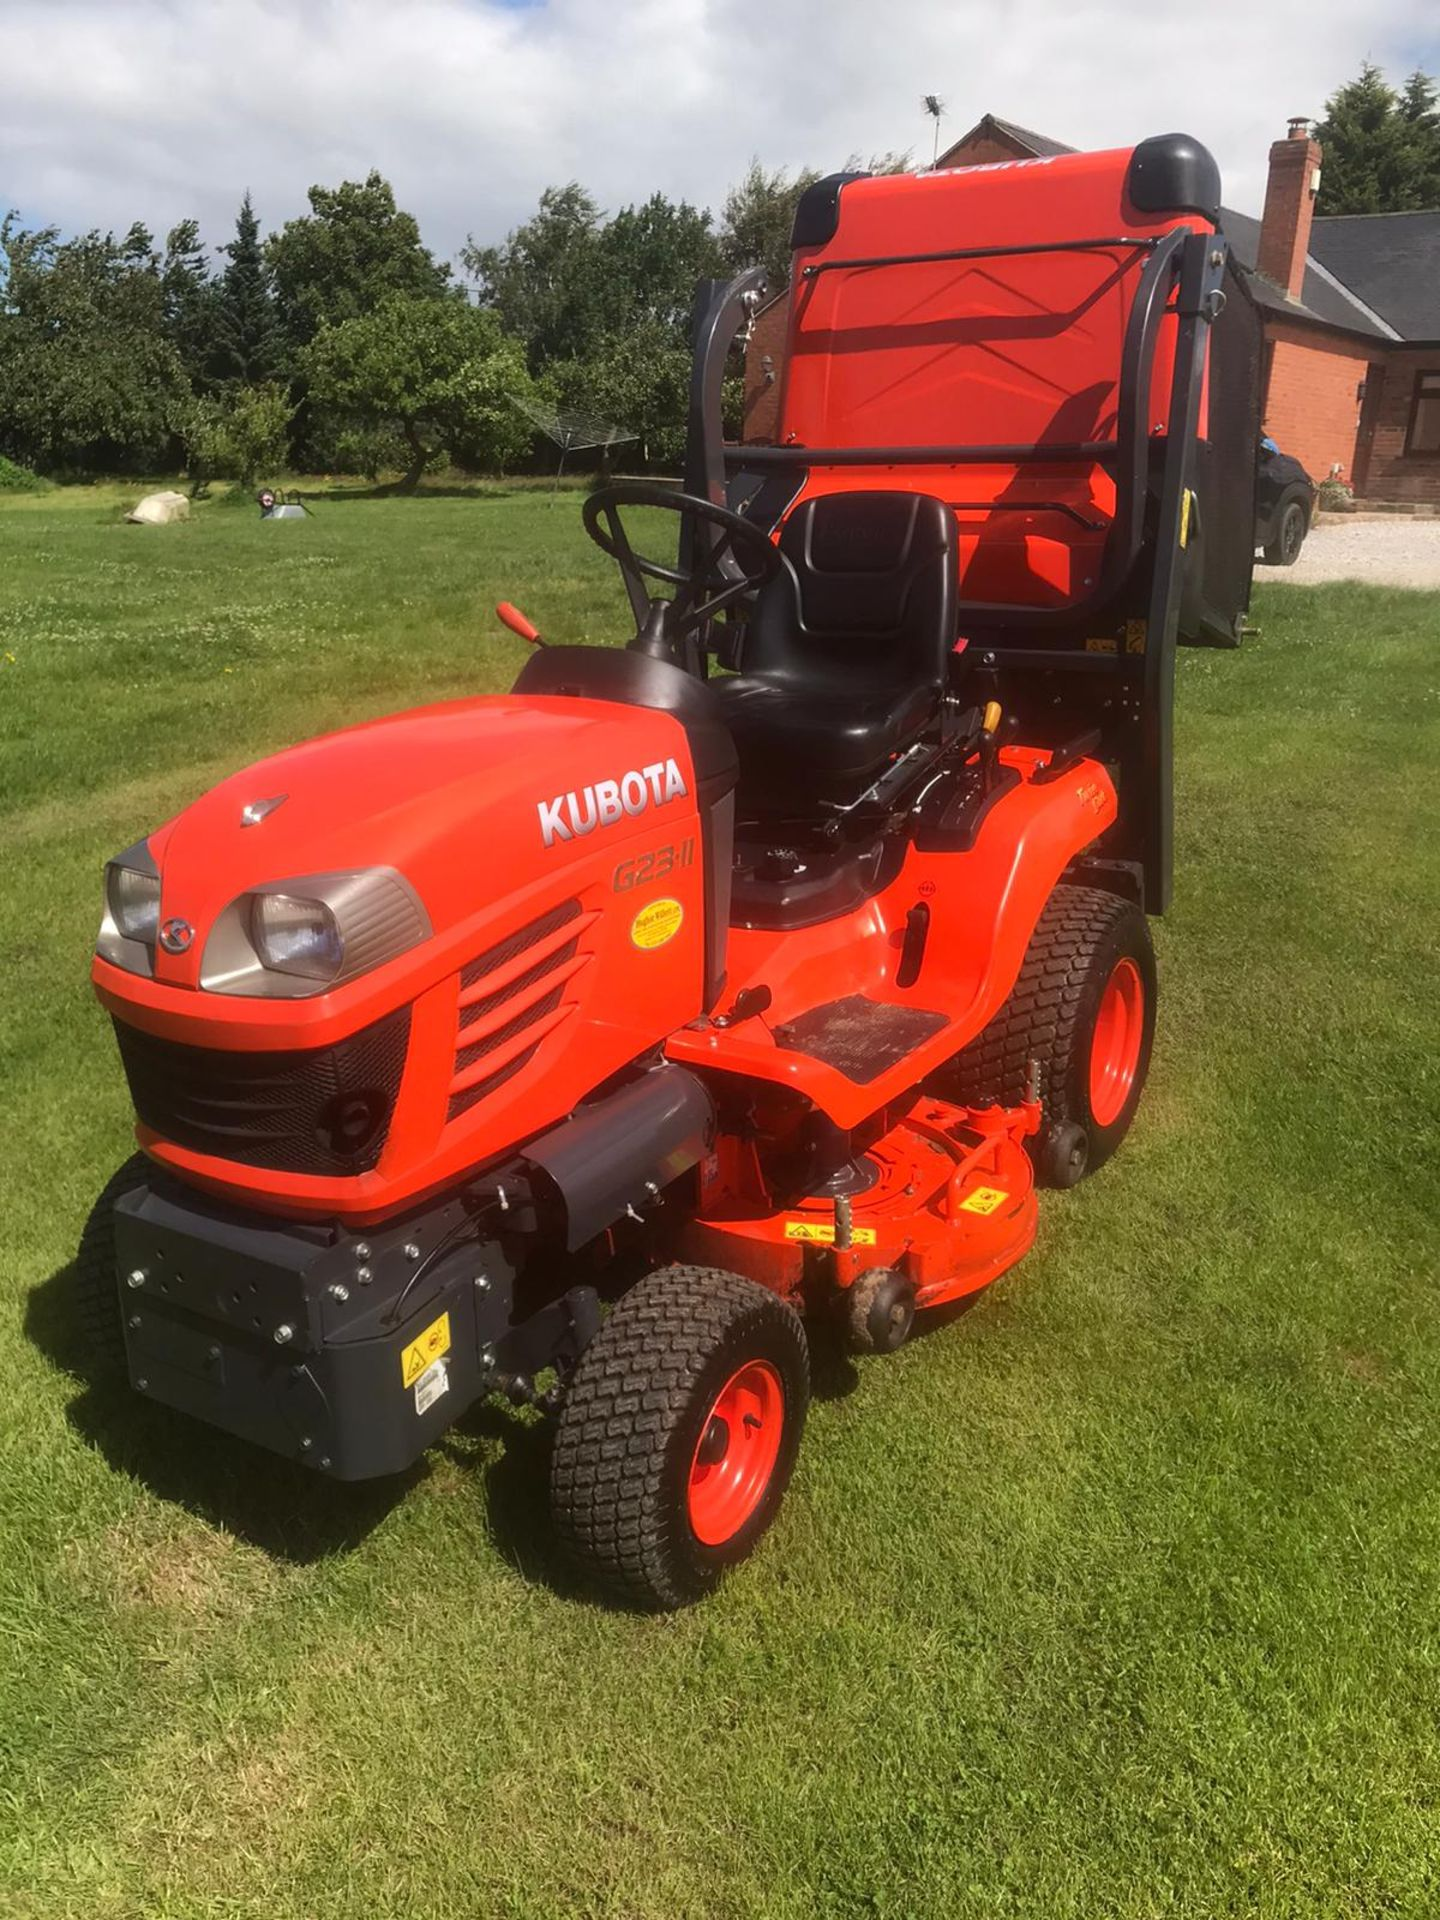 2015 KUBOTA G23-II RIDE ON LAWN MOWER, RUNS, DRIVES & CUTS, EX DEMO CONDITION, 203 HOURS *PLUS VAT* - Image 2 of 5